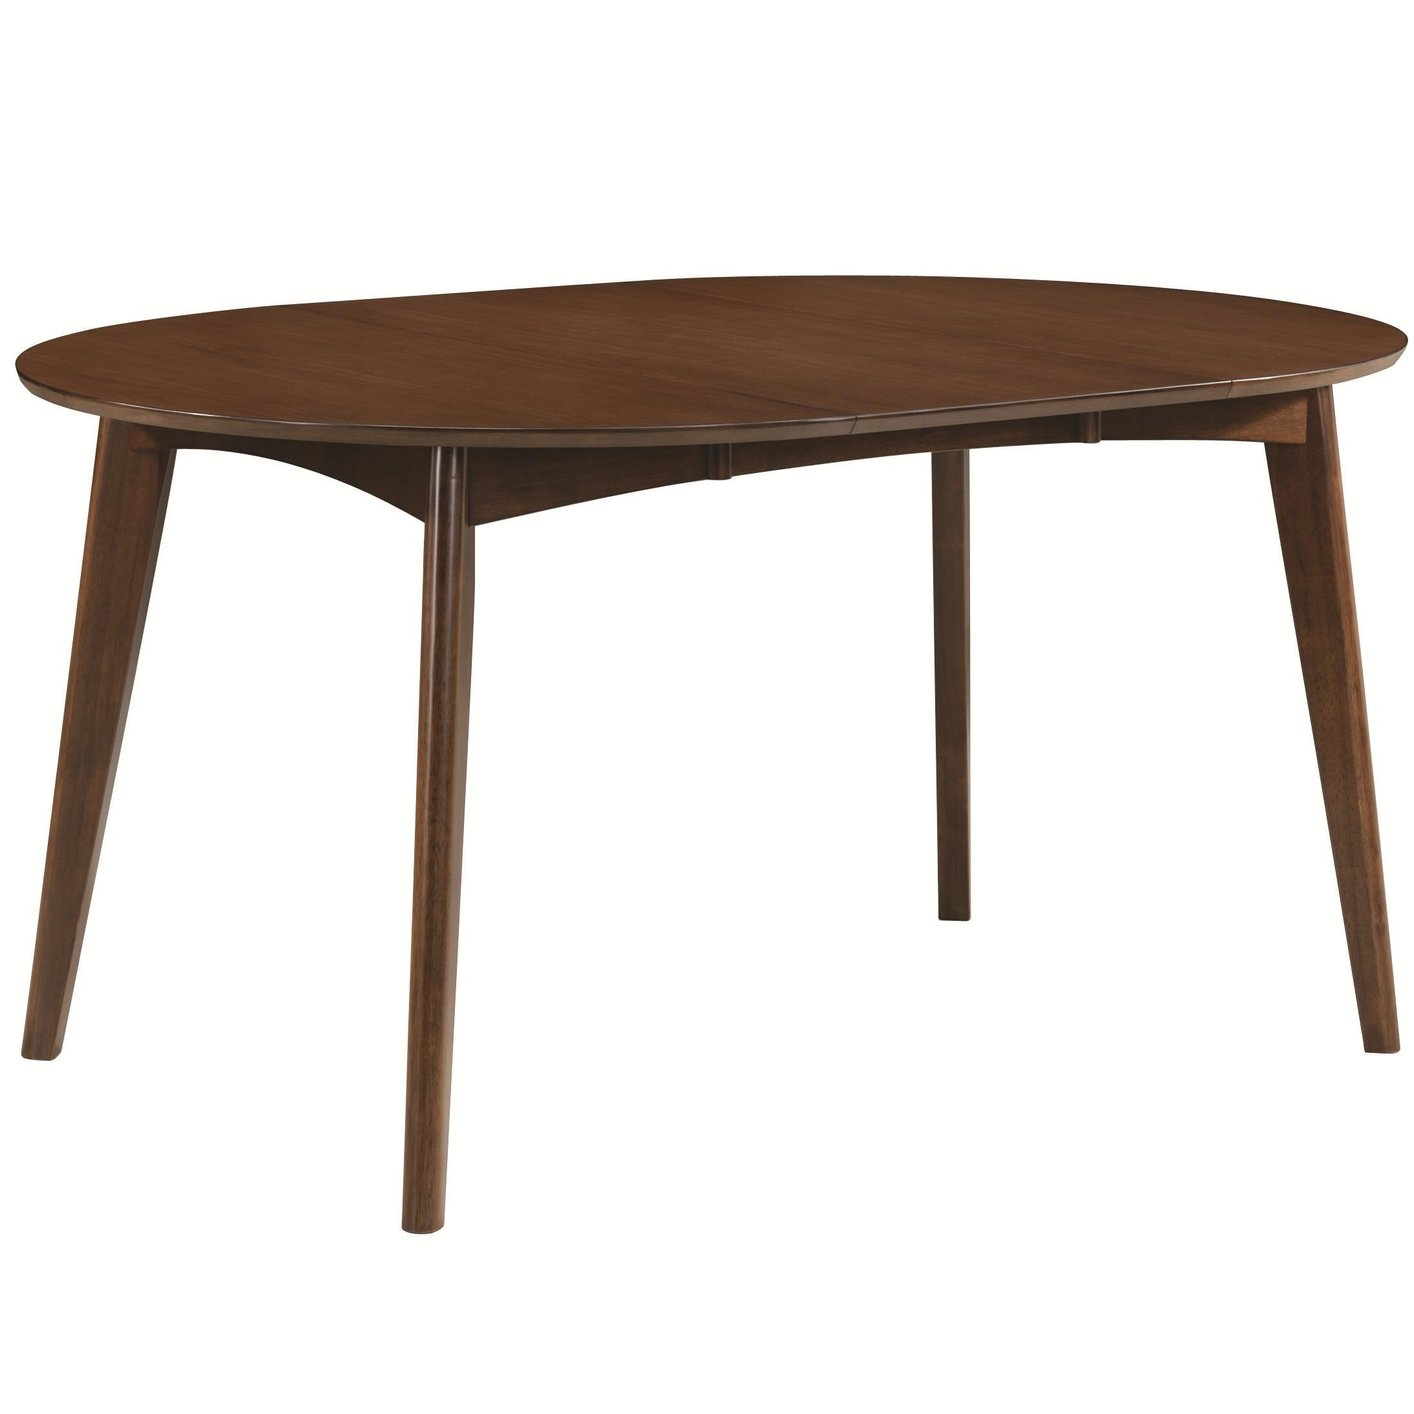 Coaster 105361 Brown Wood Dining Table Steal A Sofa Furniture Outlet